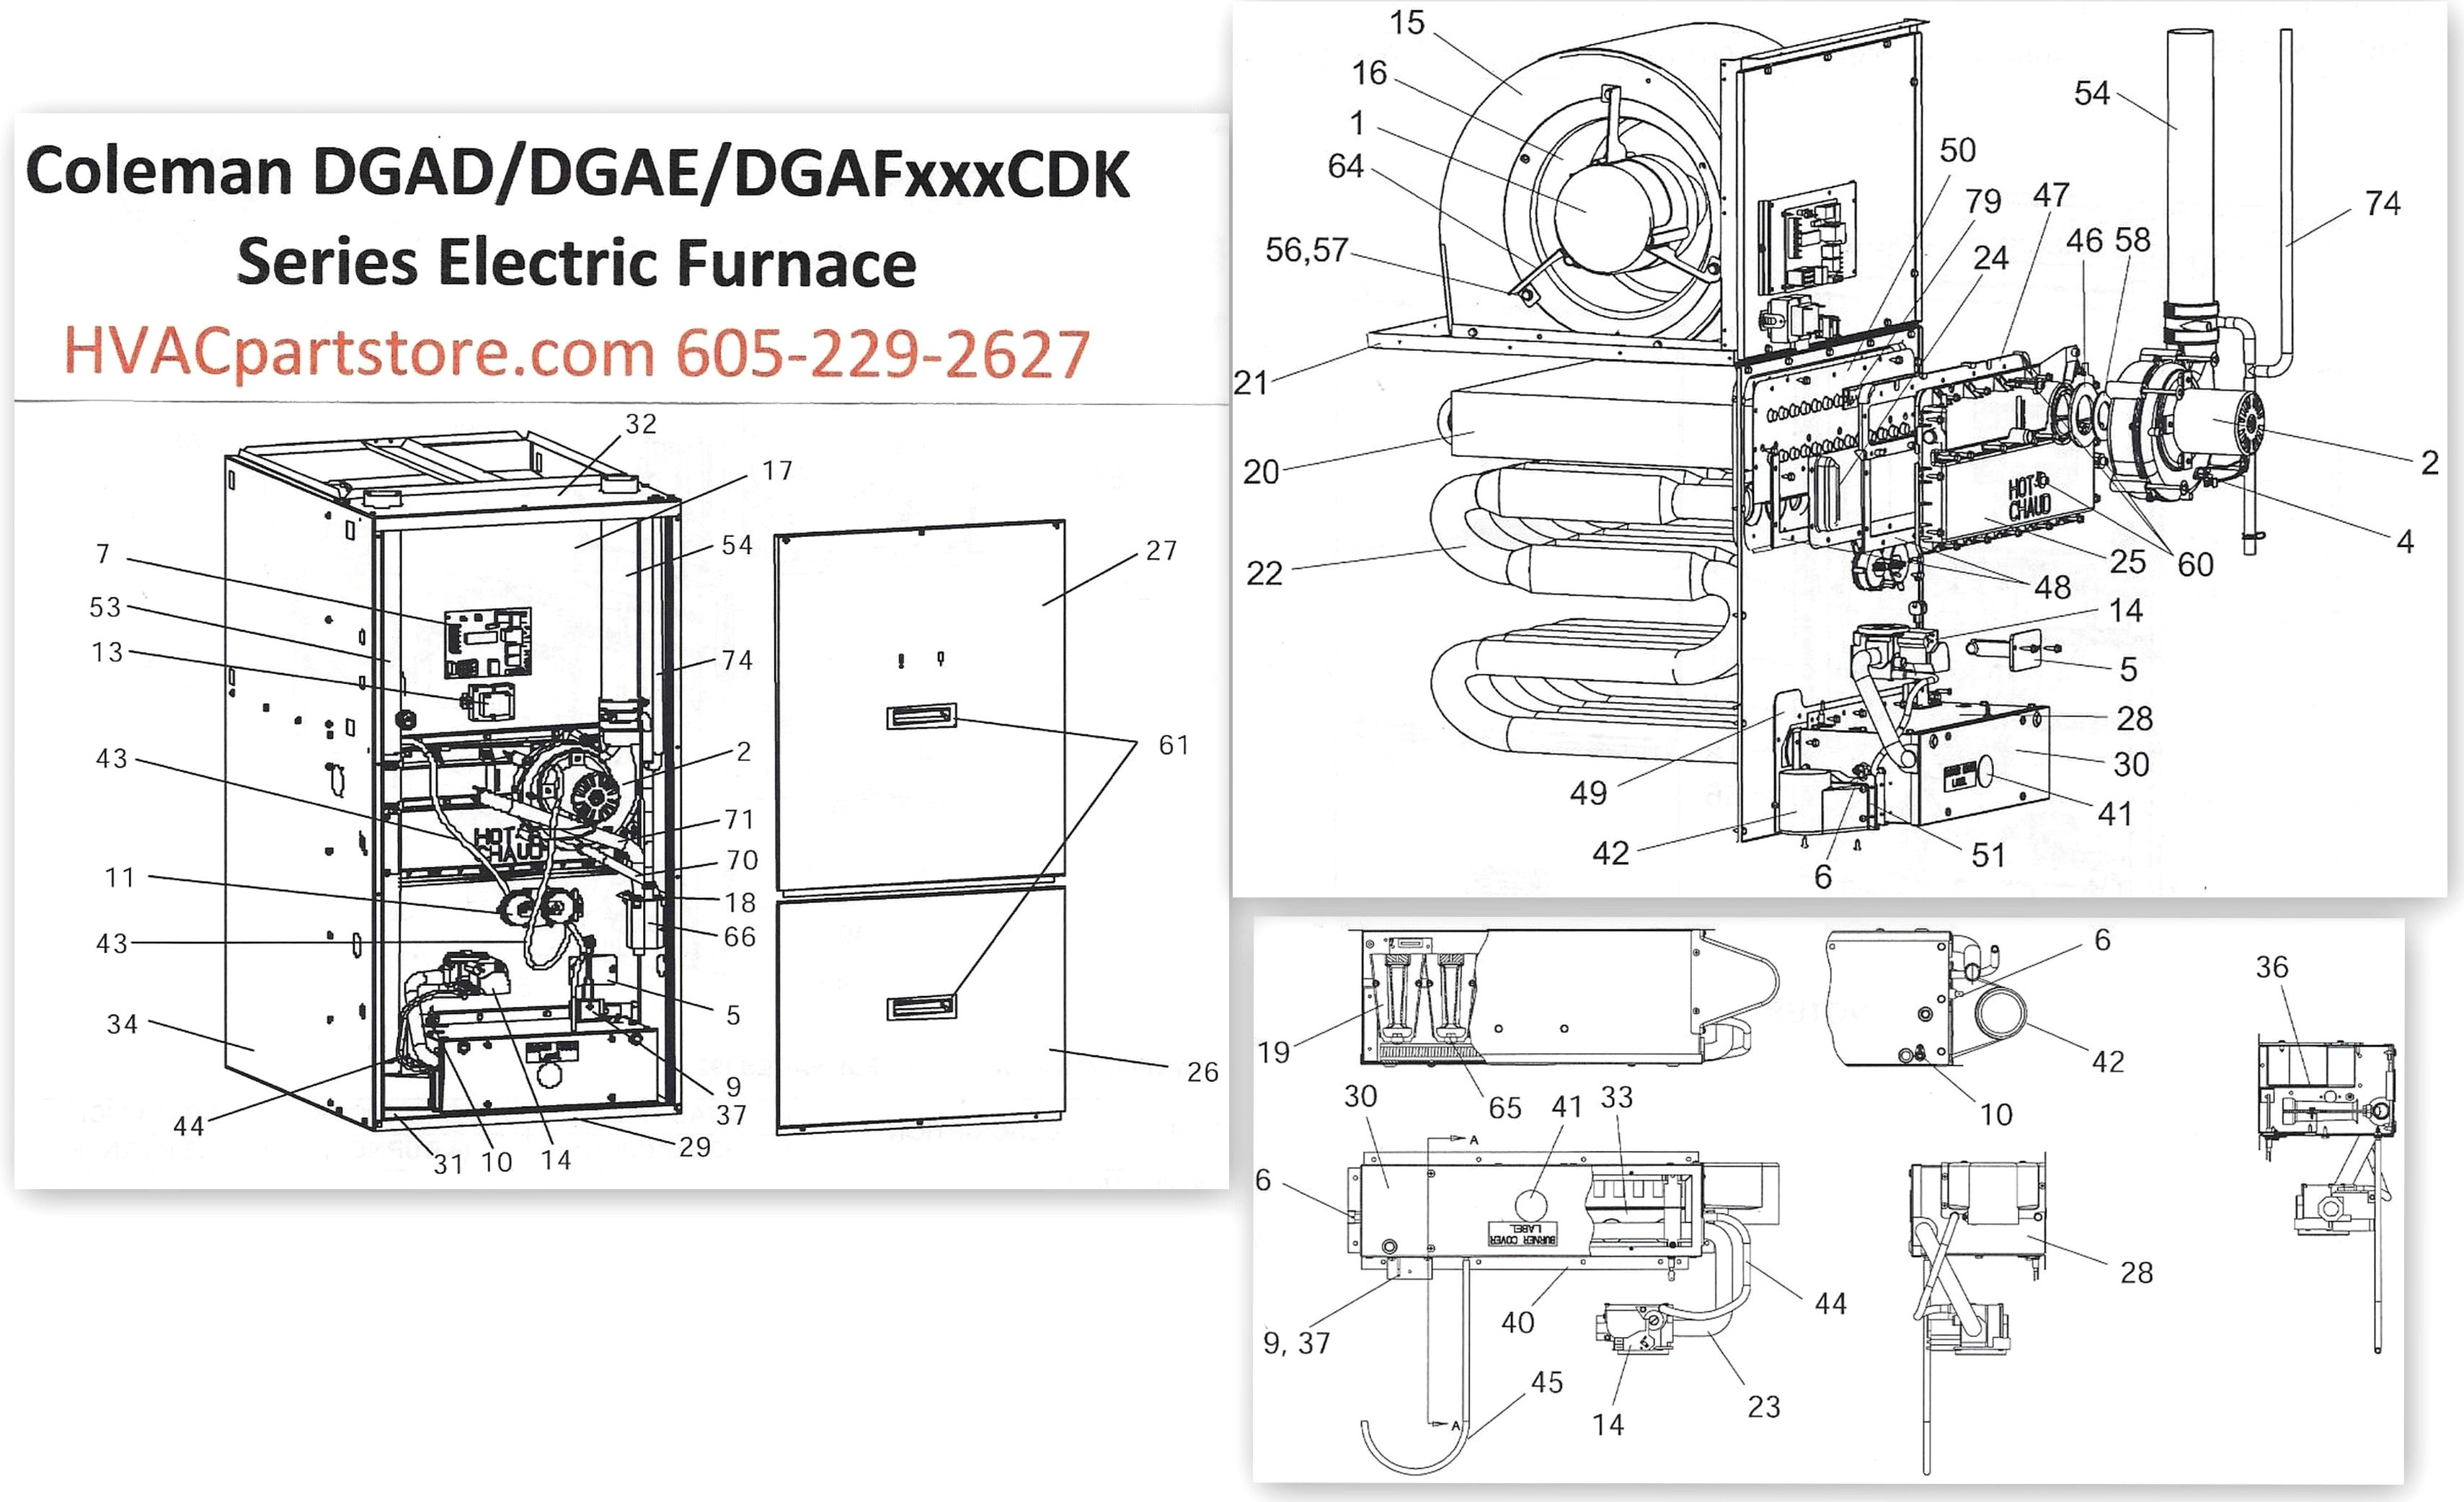 Coleman Stove Parts Diagram Gas Furnace Parts Diagram Pics Of Coleman Stove Parts Diagram